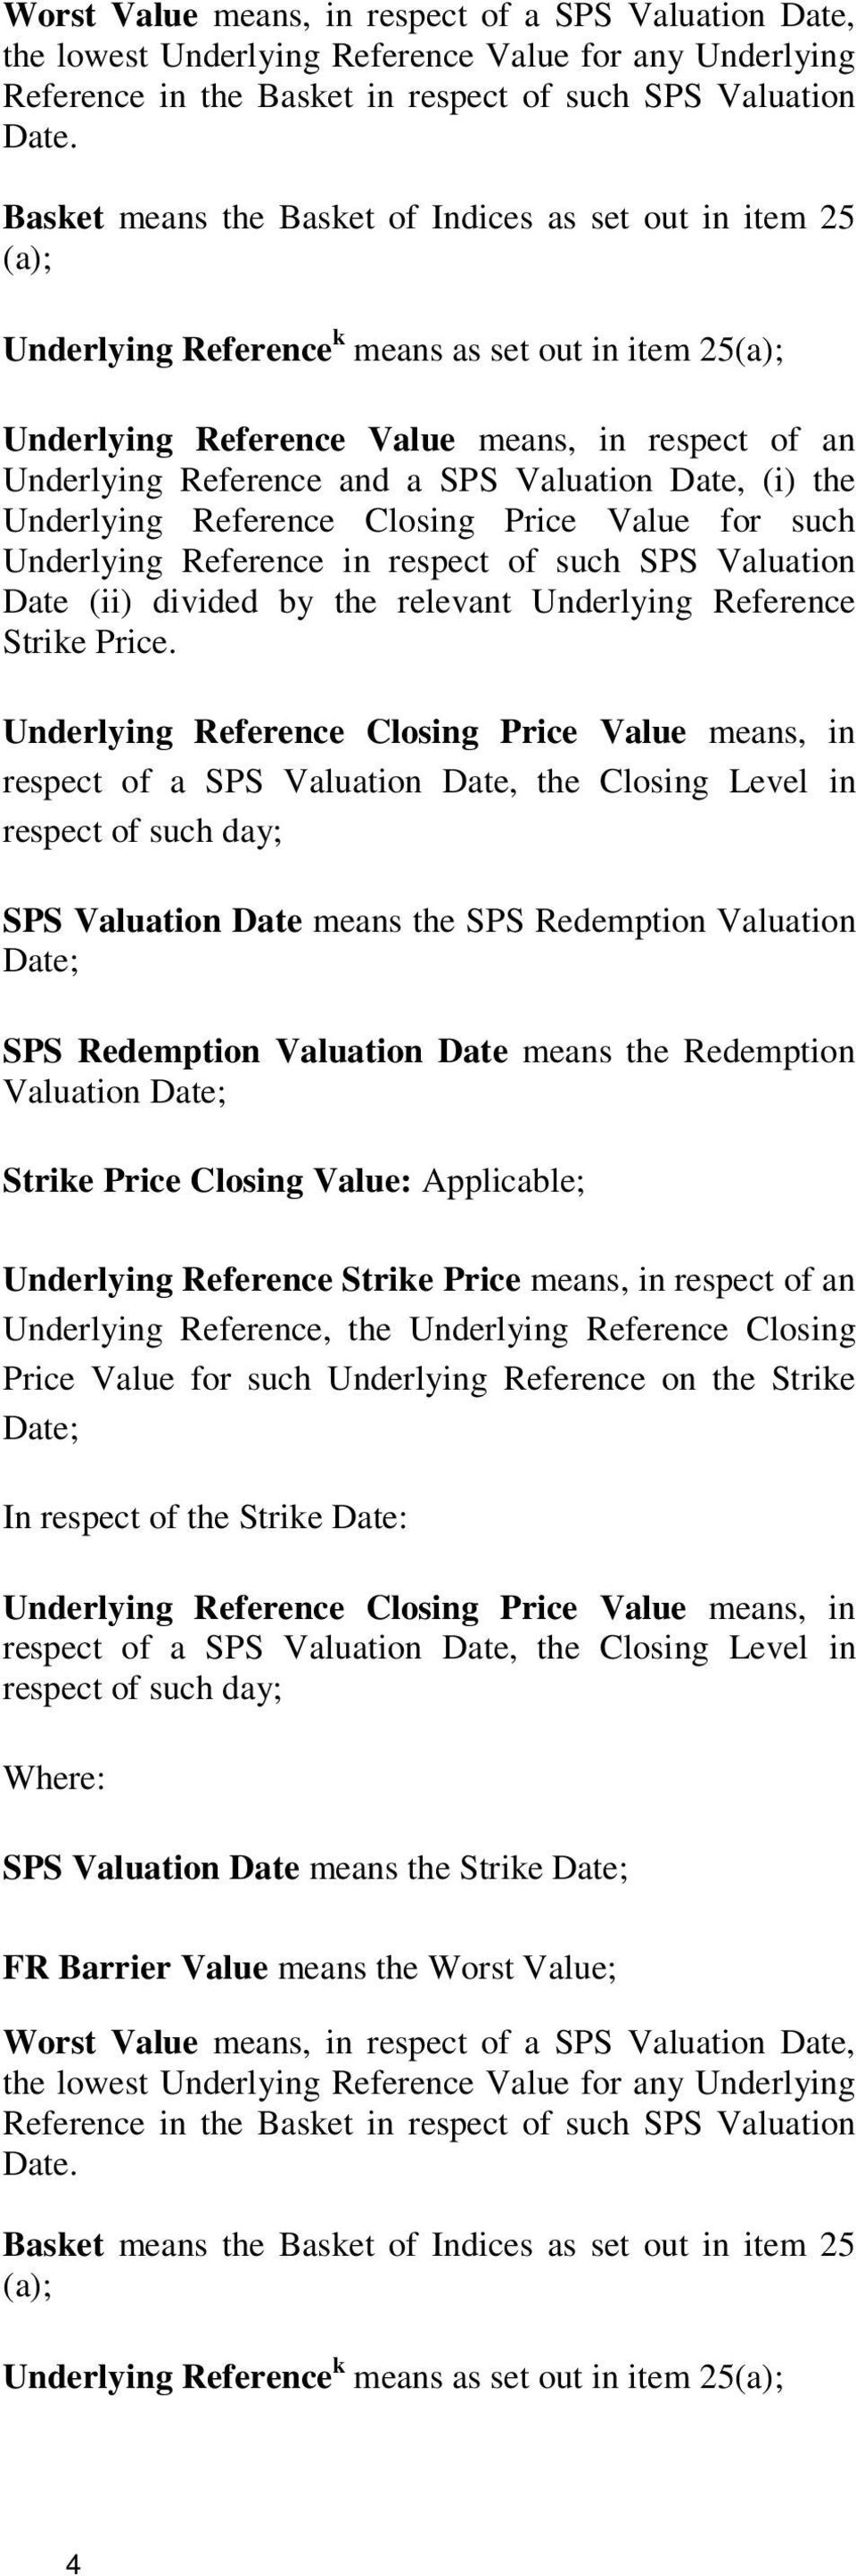 Valuation Date, (i) the Underlying Reference Closing Price Value for such Underlying Reference in respect of such SPS Valuation Date (ii) divided by the relevant Underlying Reference Strike Price.